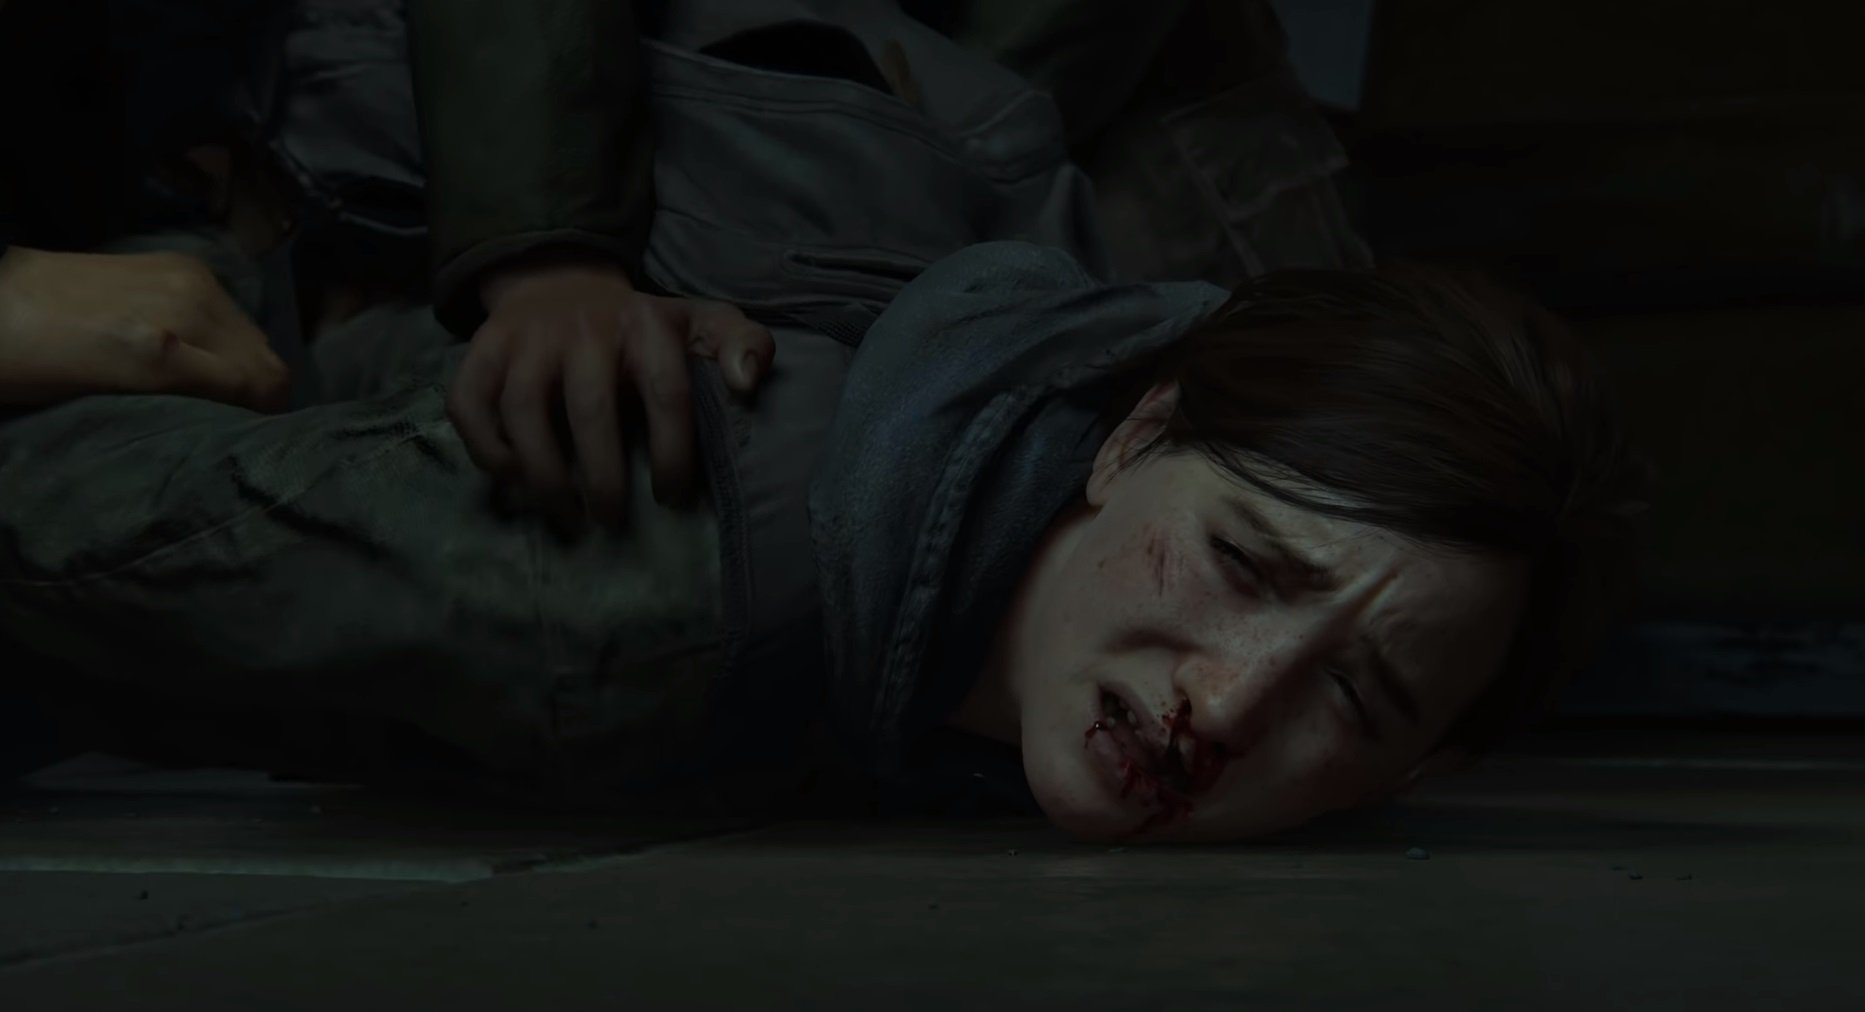 The trailer seems to hint at Dinah being murdered, causing Ellie to venture out and seek revenge in The Last of Us Part II.